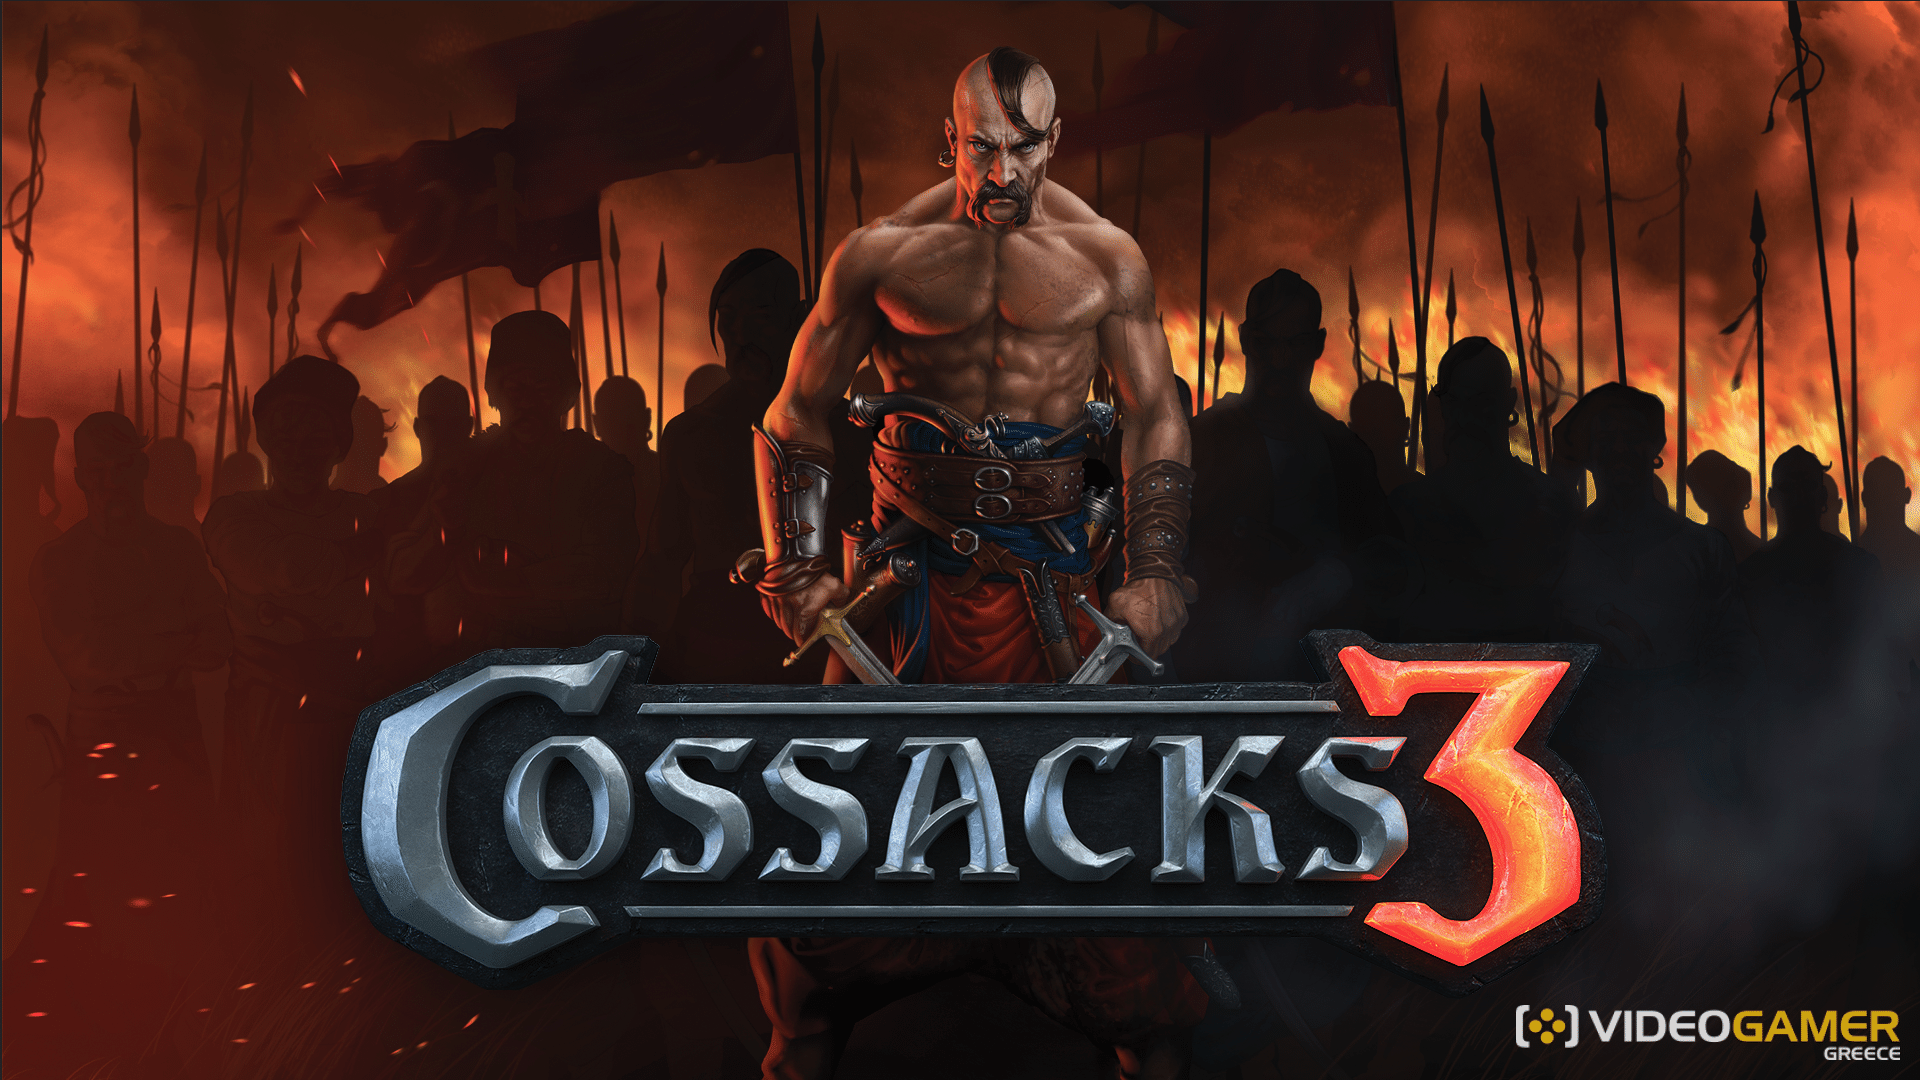 Cossacks3_1920.0[1]